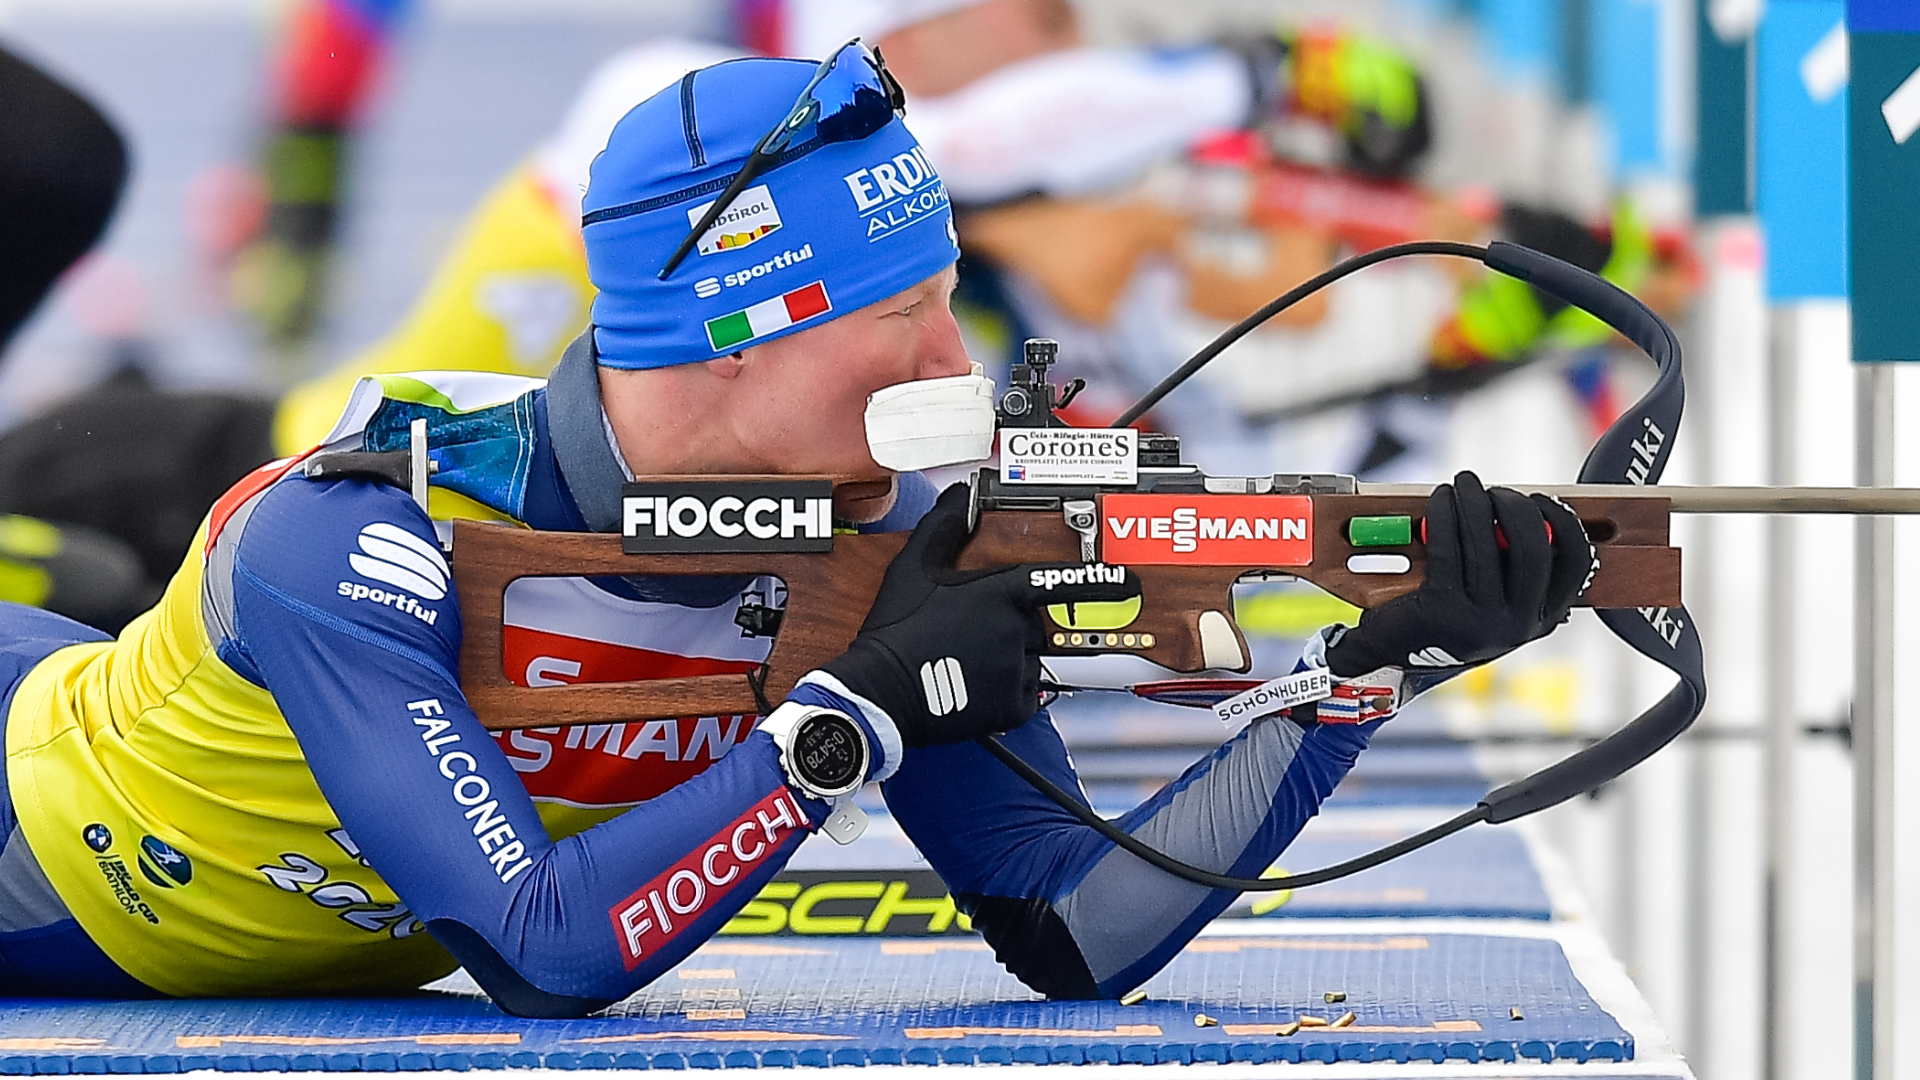 BIATHLON. EXCELLENT PLACINGS IN ANTHOLZ